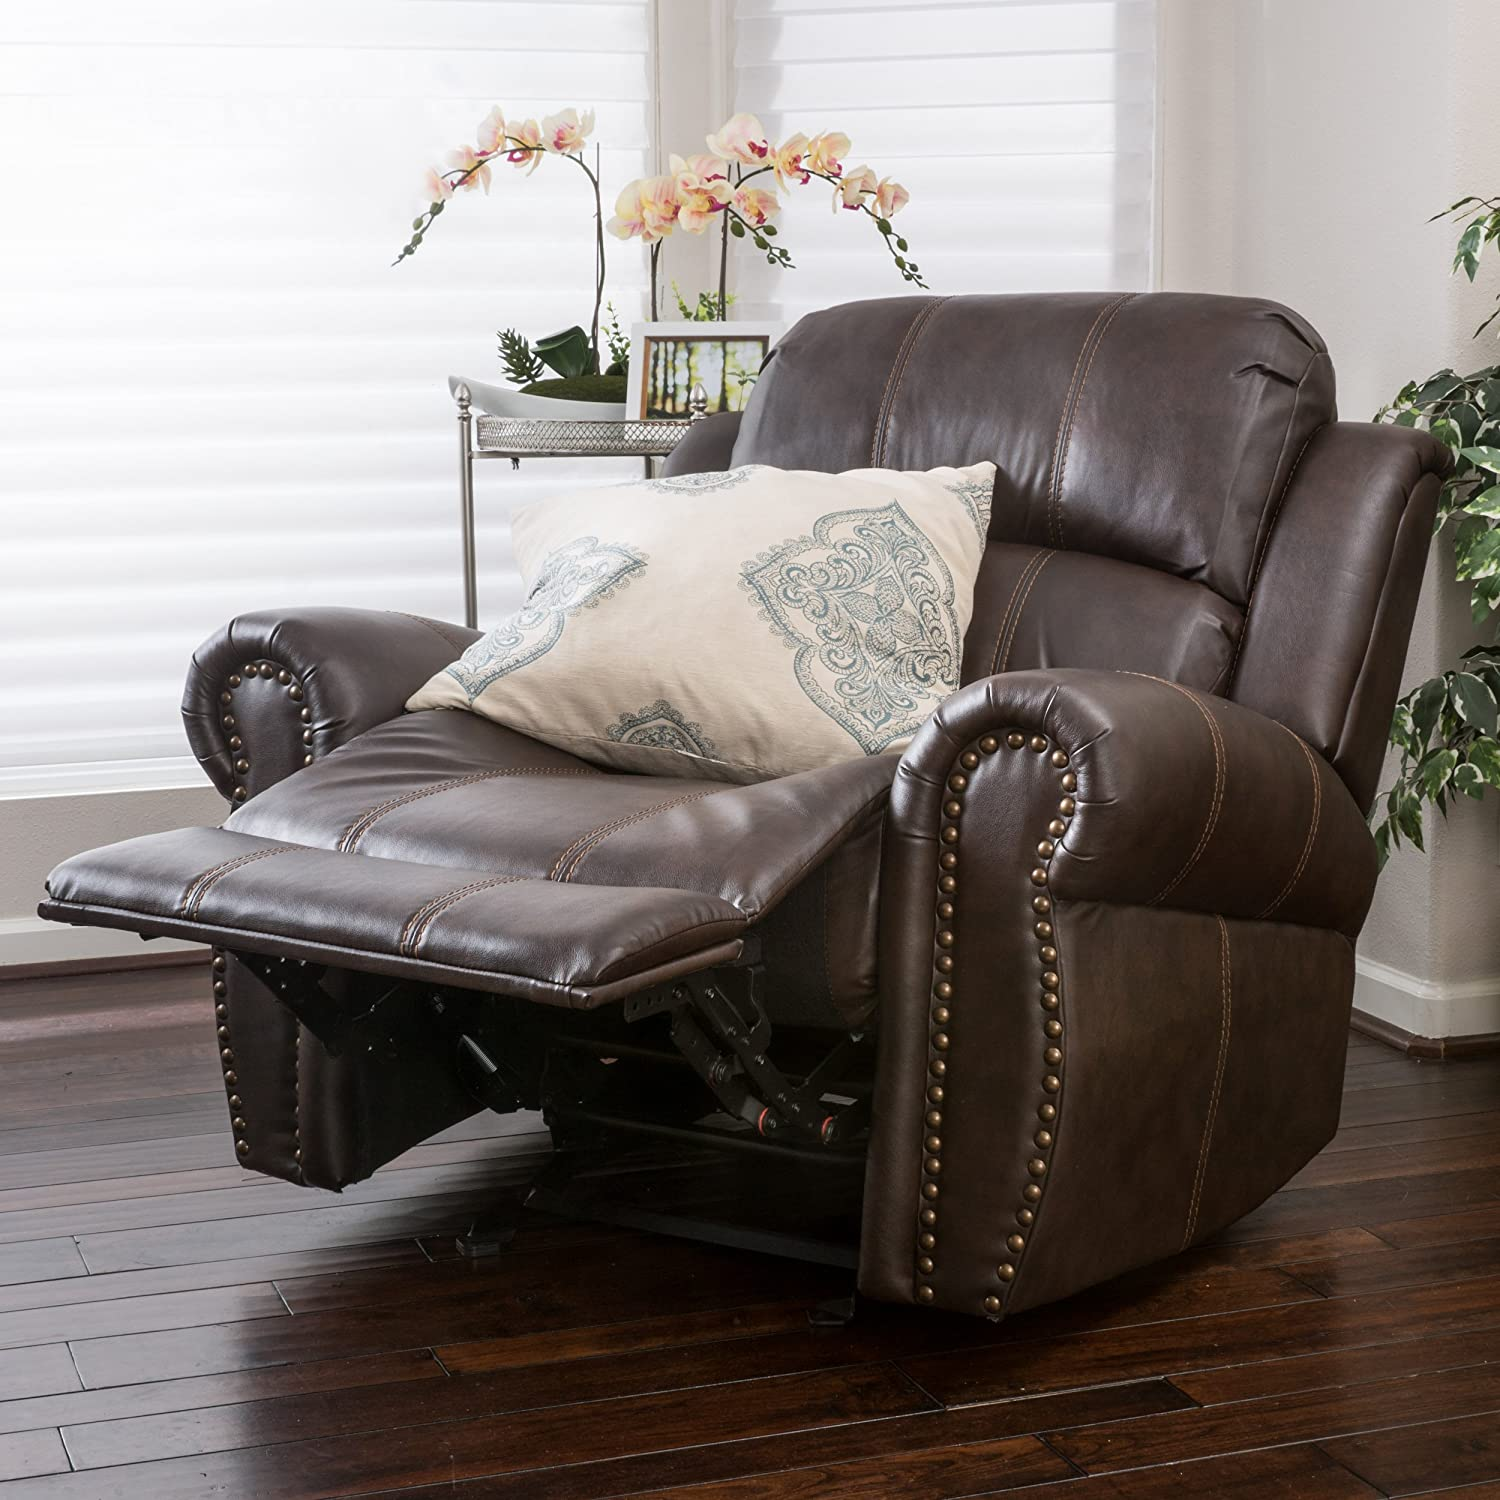 Christopher Knight Home 296466 Harbor Brown Leather Glider Recliner Club Chair